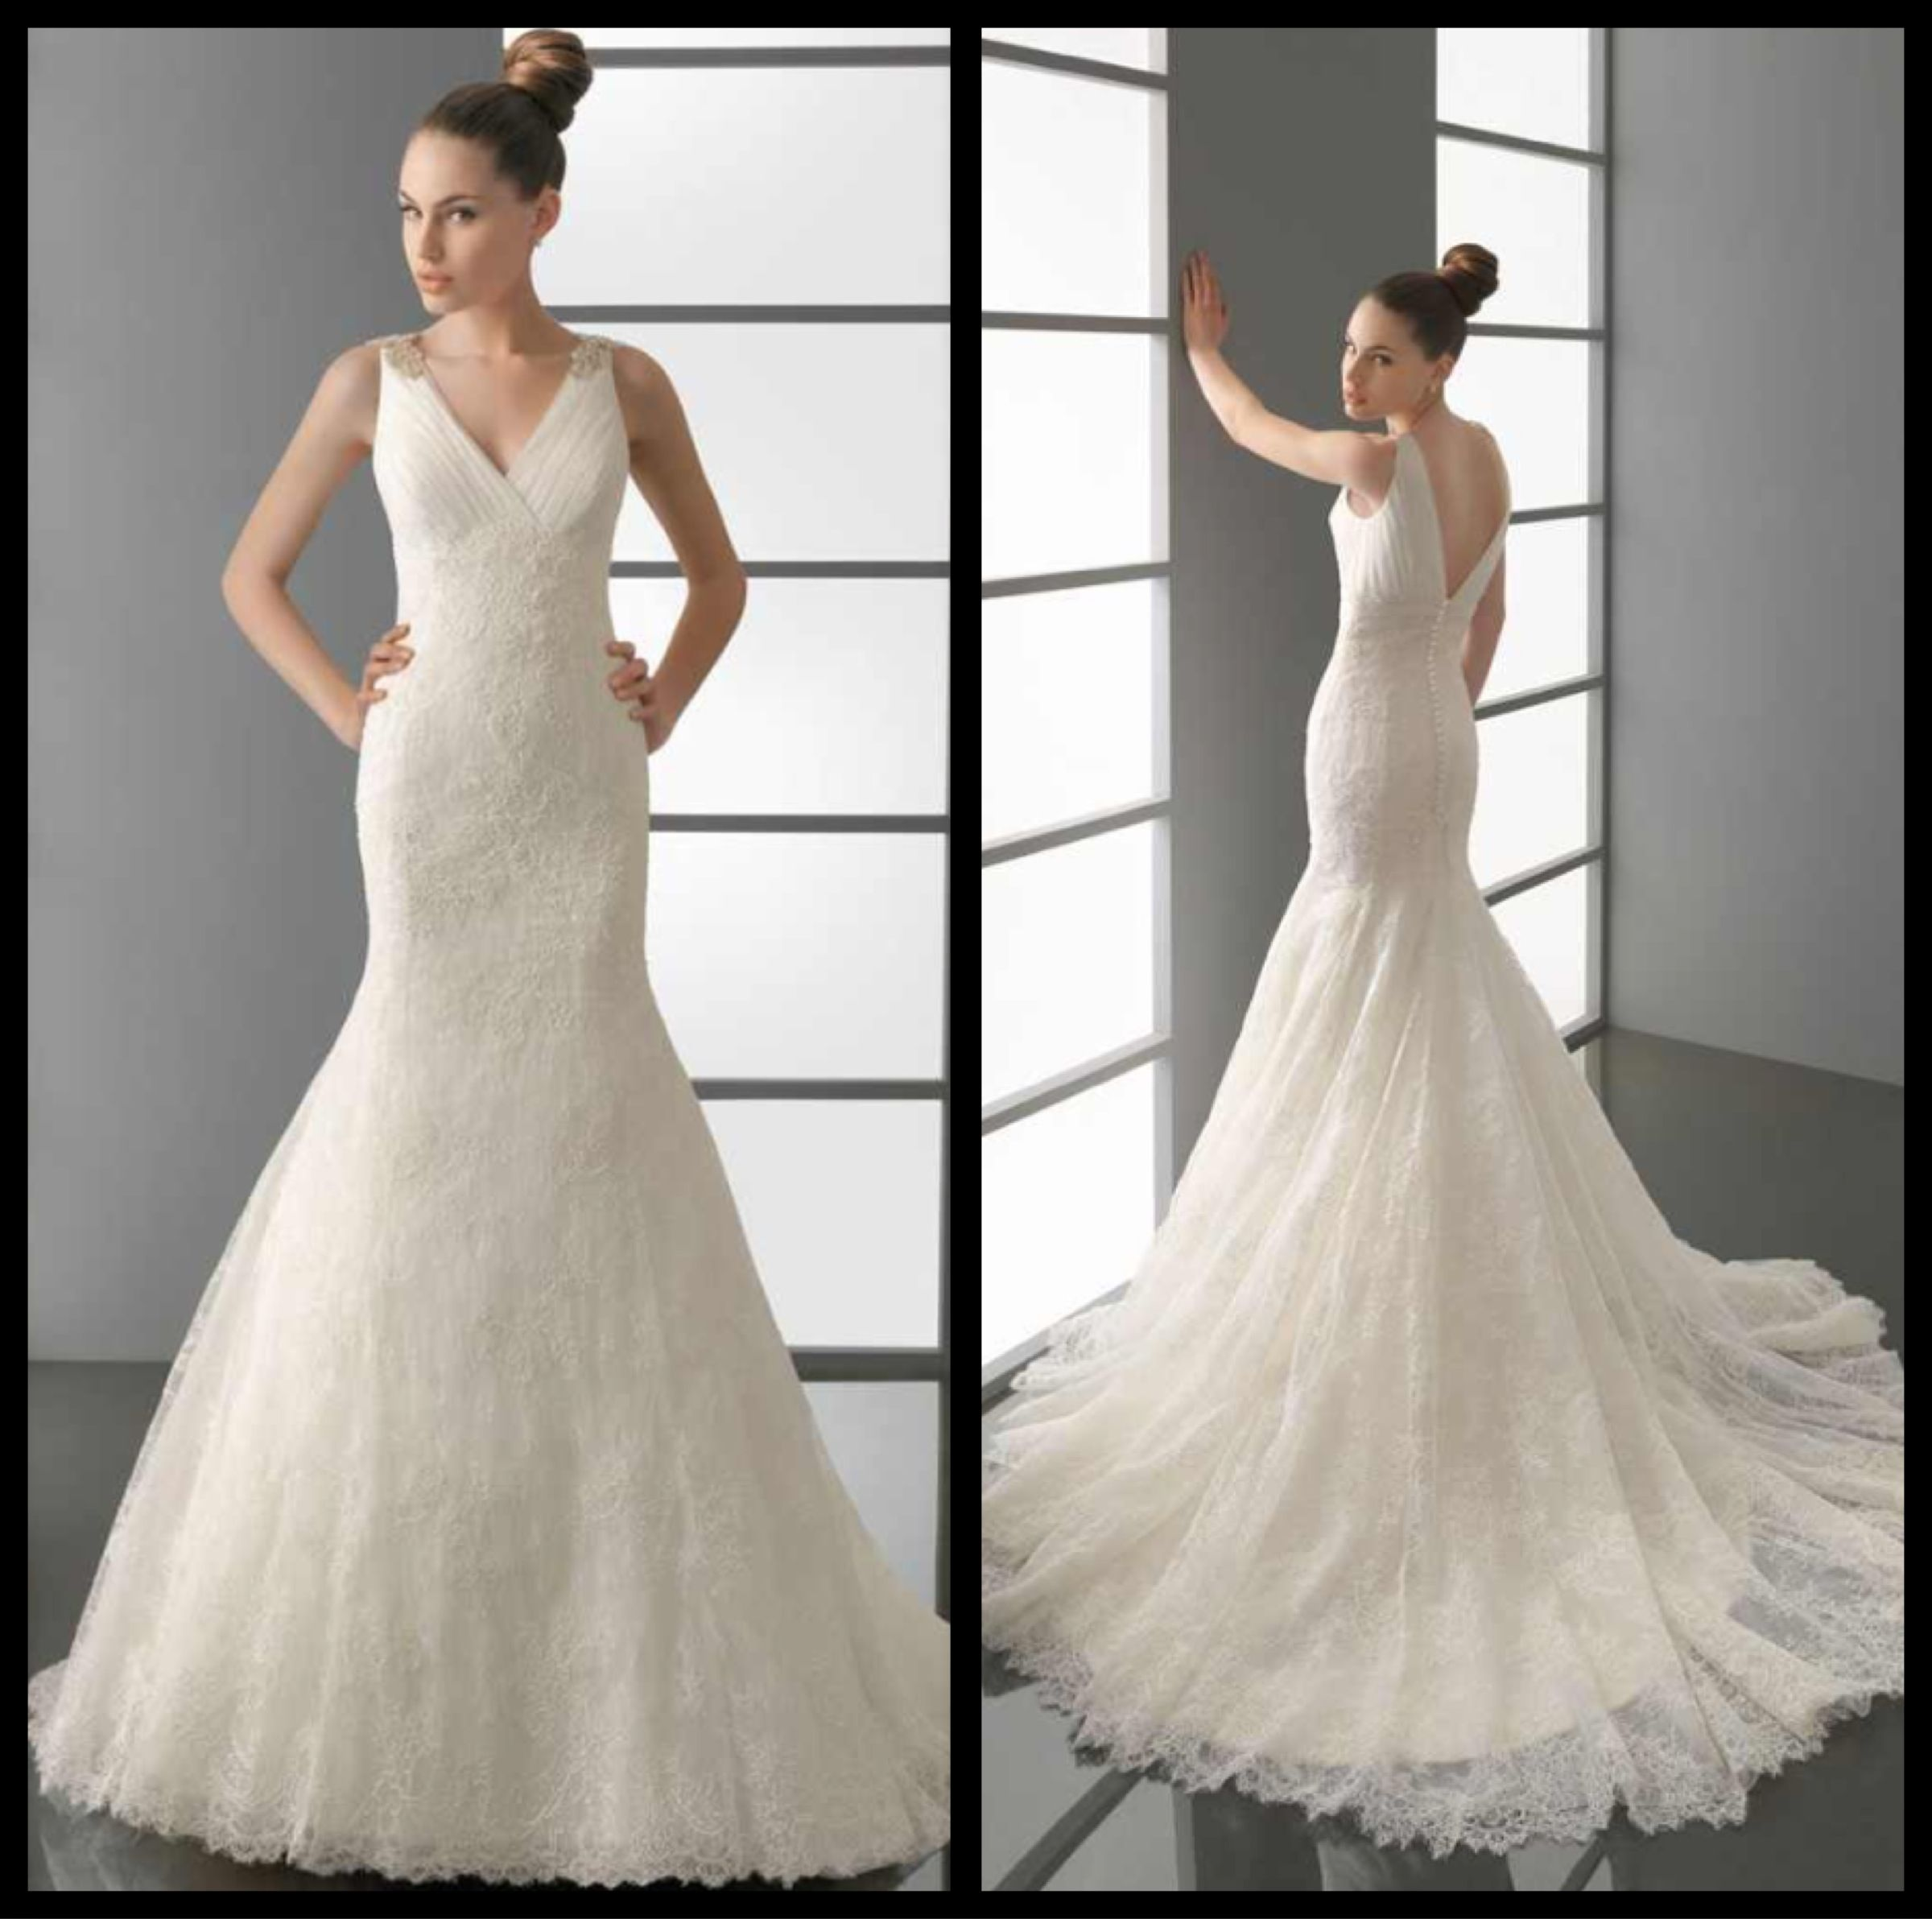 $500 wedding dress  My favorite so far  and less than   For Carissa  Pinterest